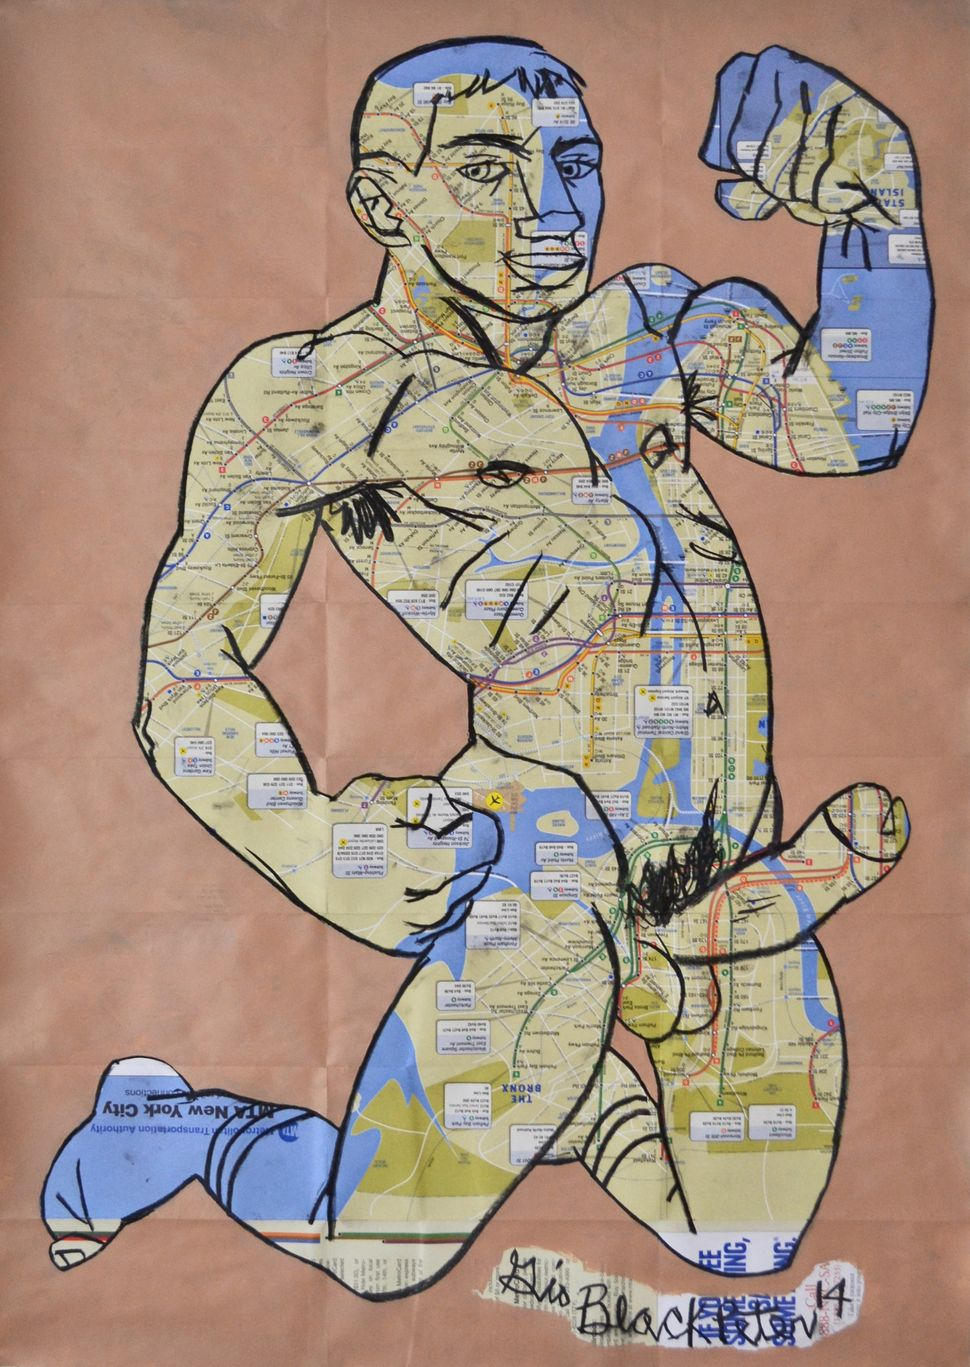 Gio Black Peter, Big Dreams, 2014,  Acrylic and oil pastel on NYC Subway   map, 32.5 x 23 in. Courtesy of the   artist.